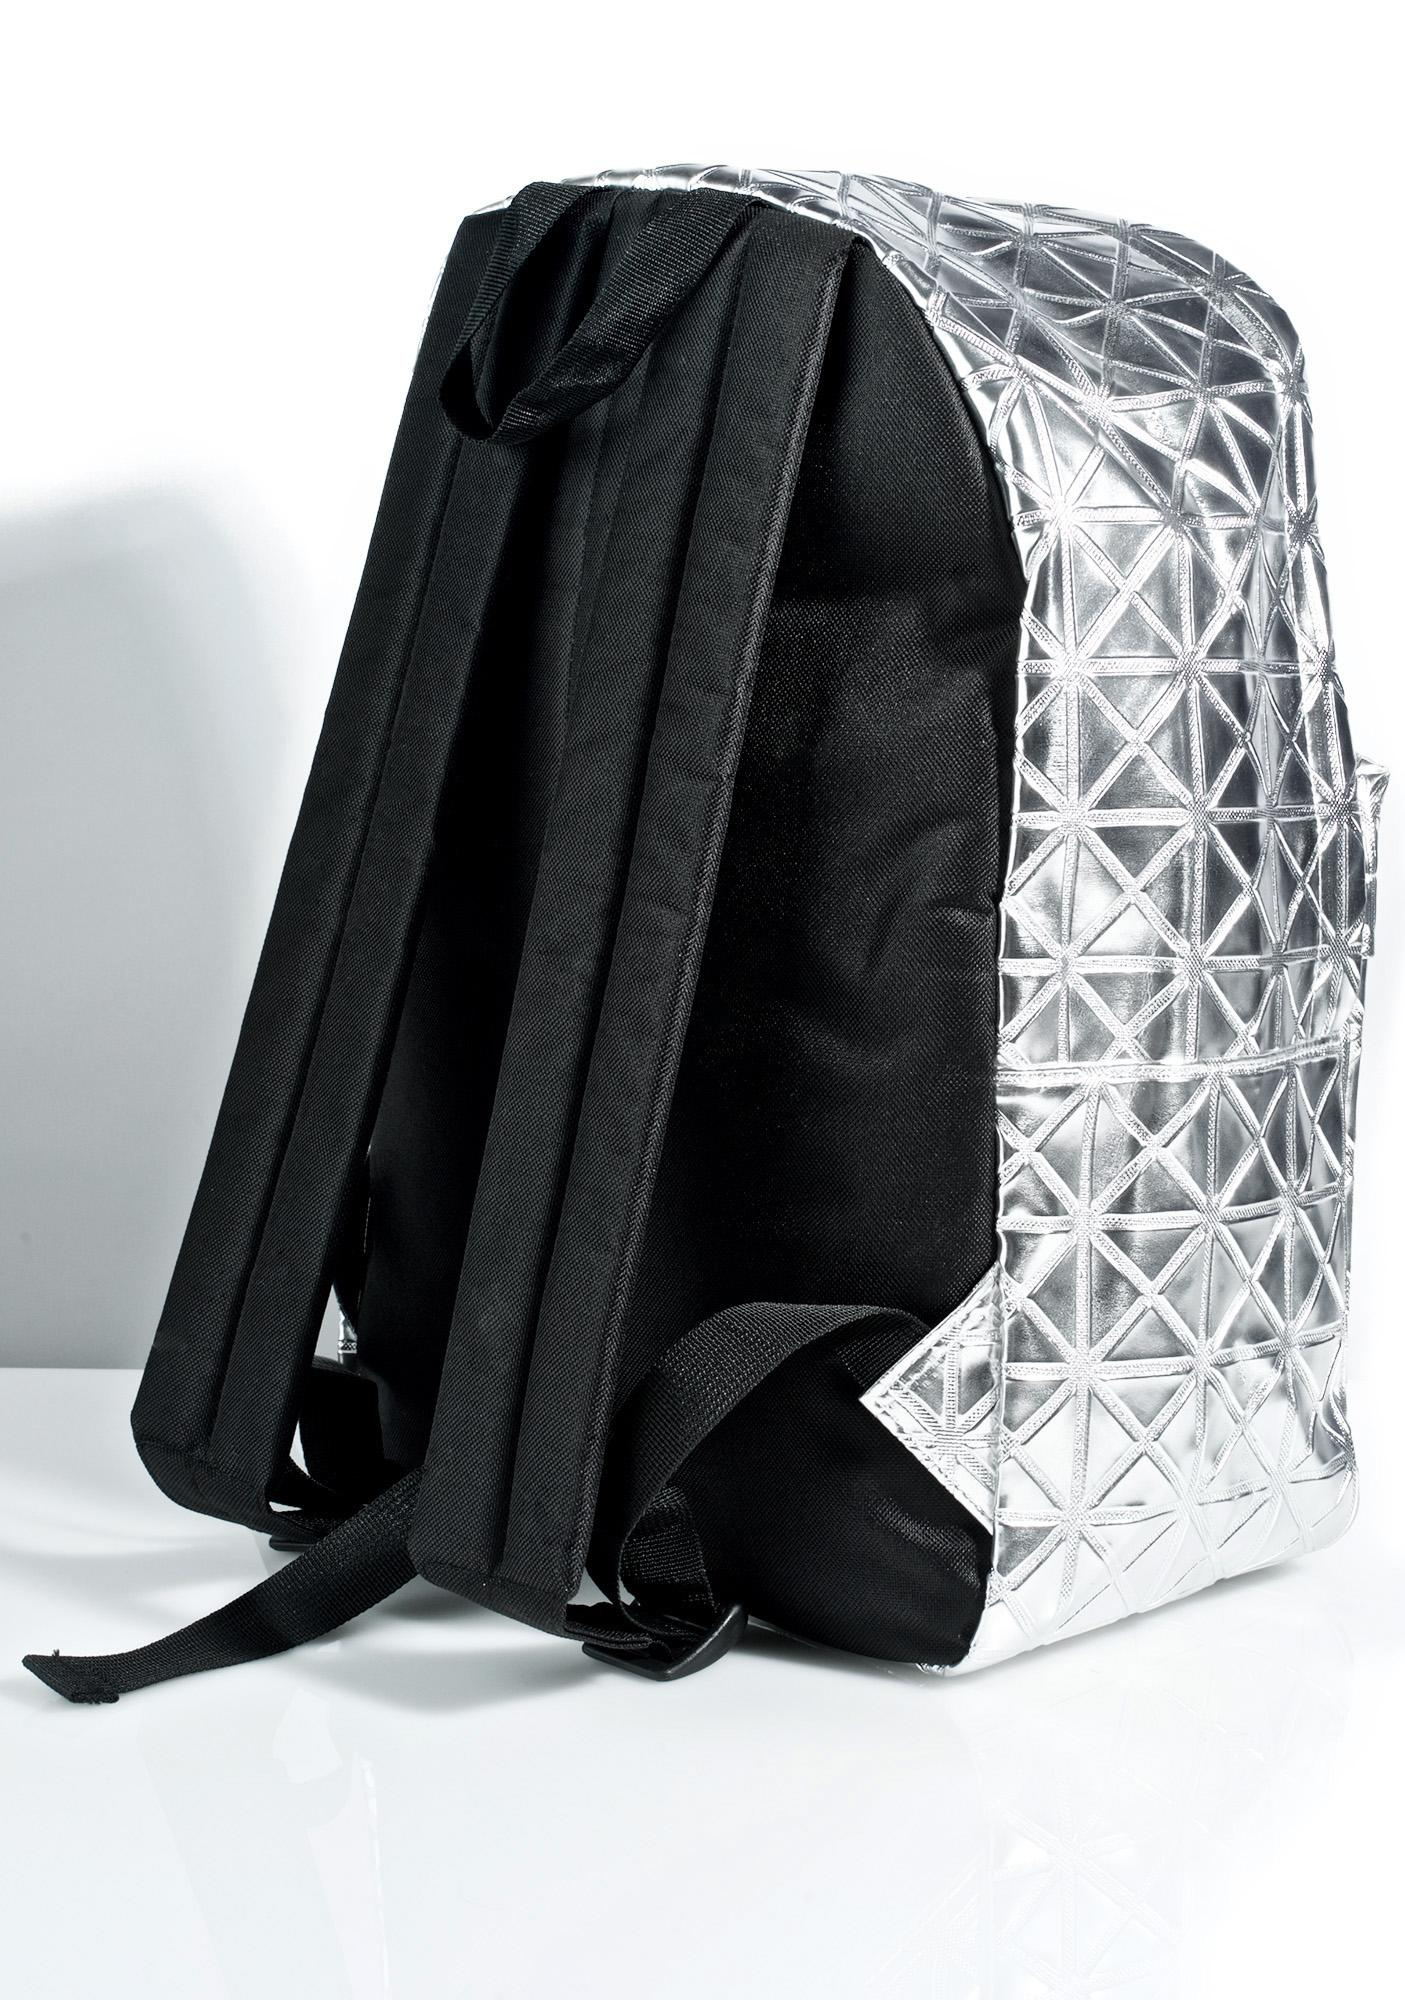 Moondancer Metallic Backpack